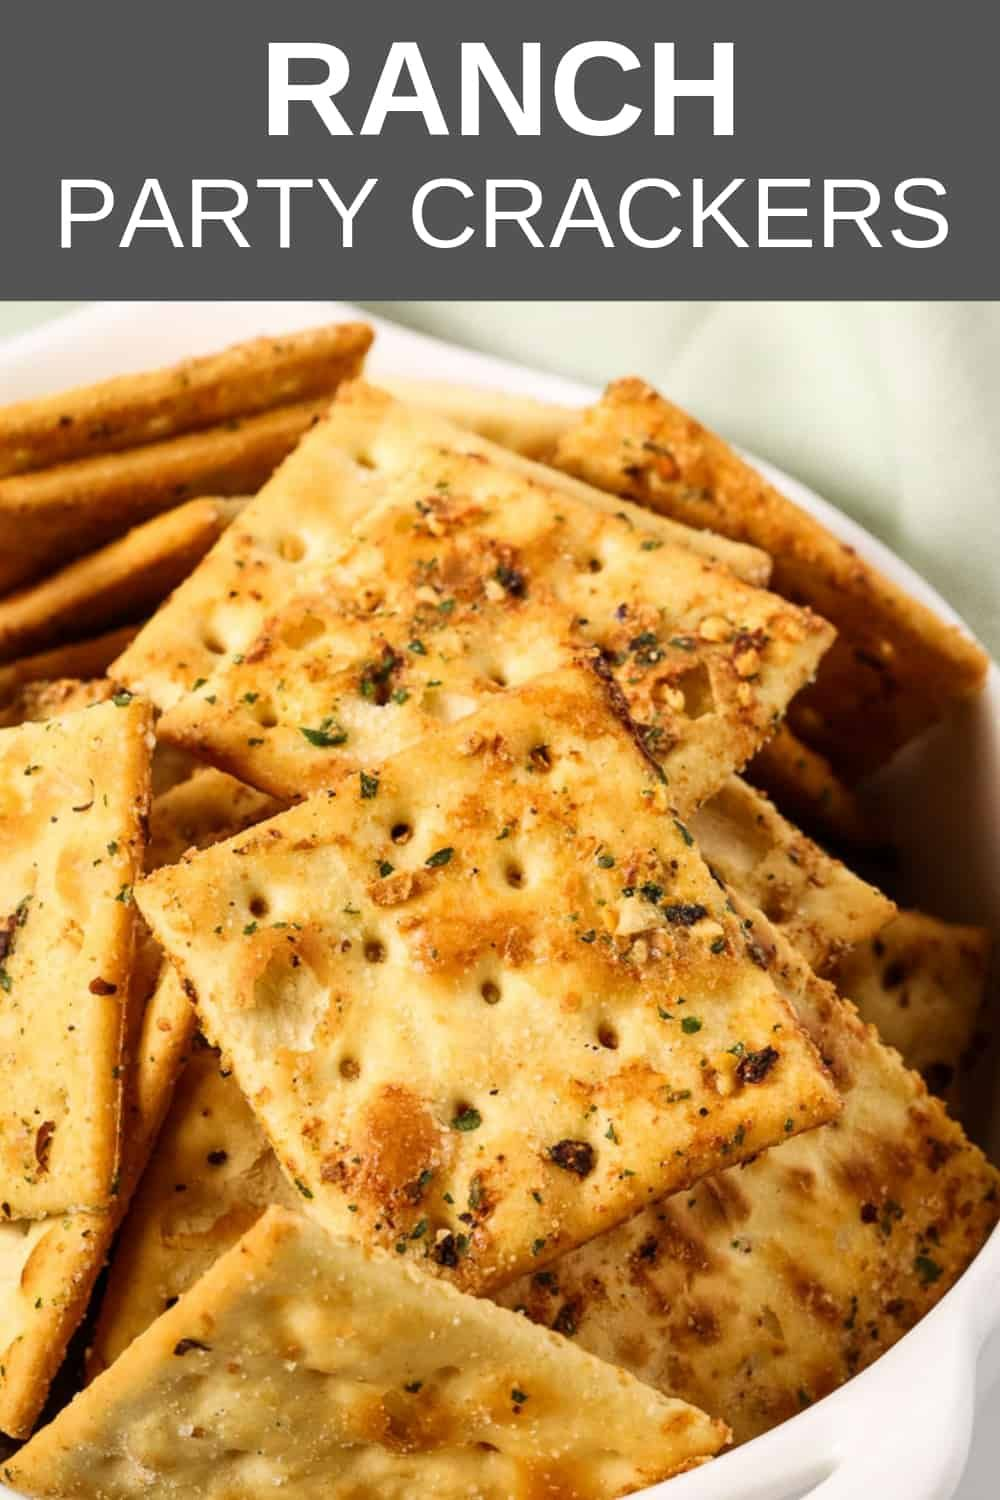 Ranch Party Crackers Recipe